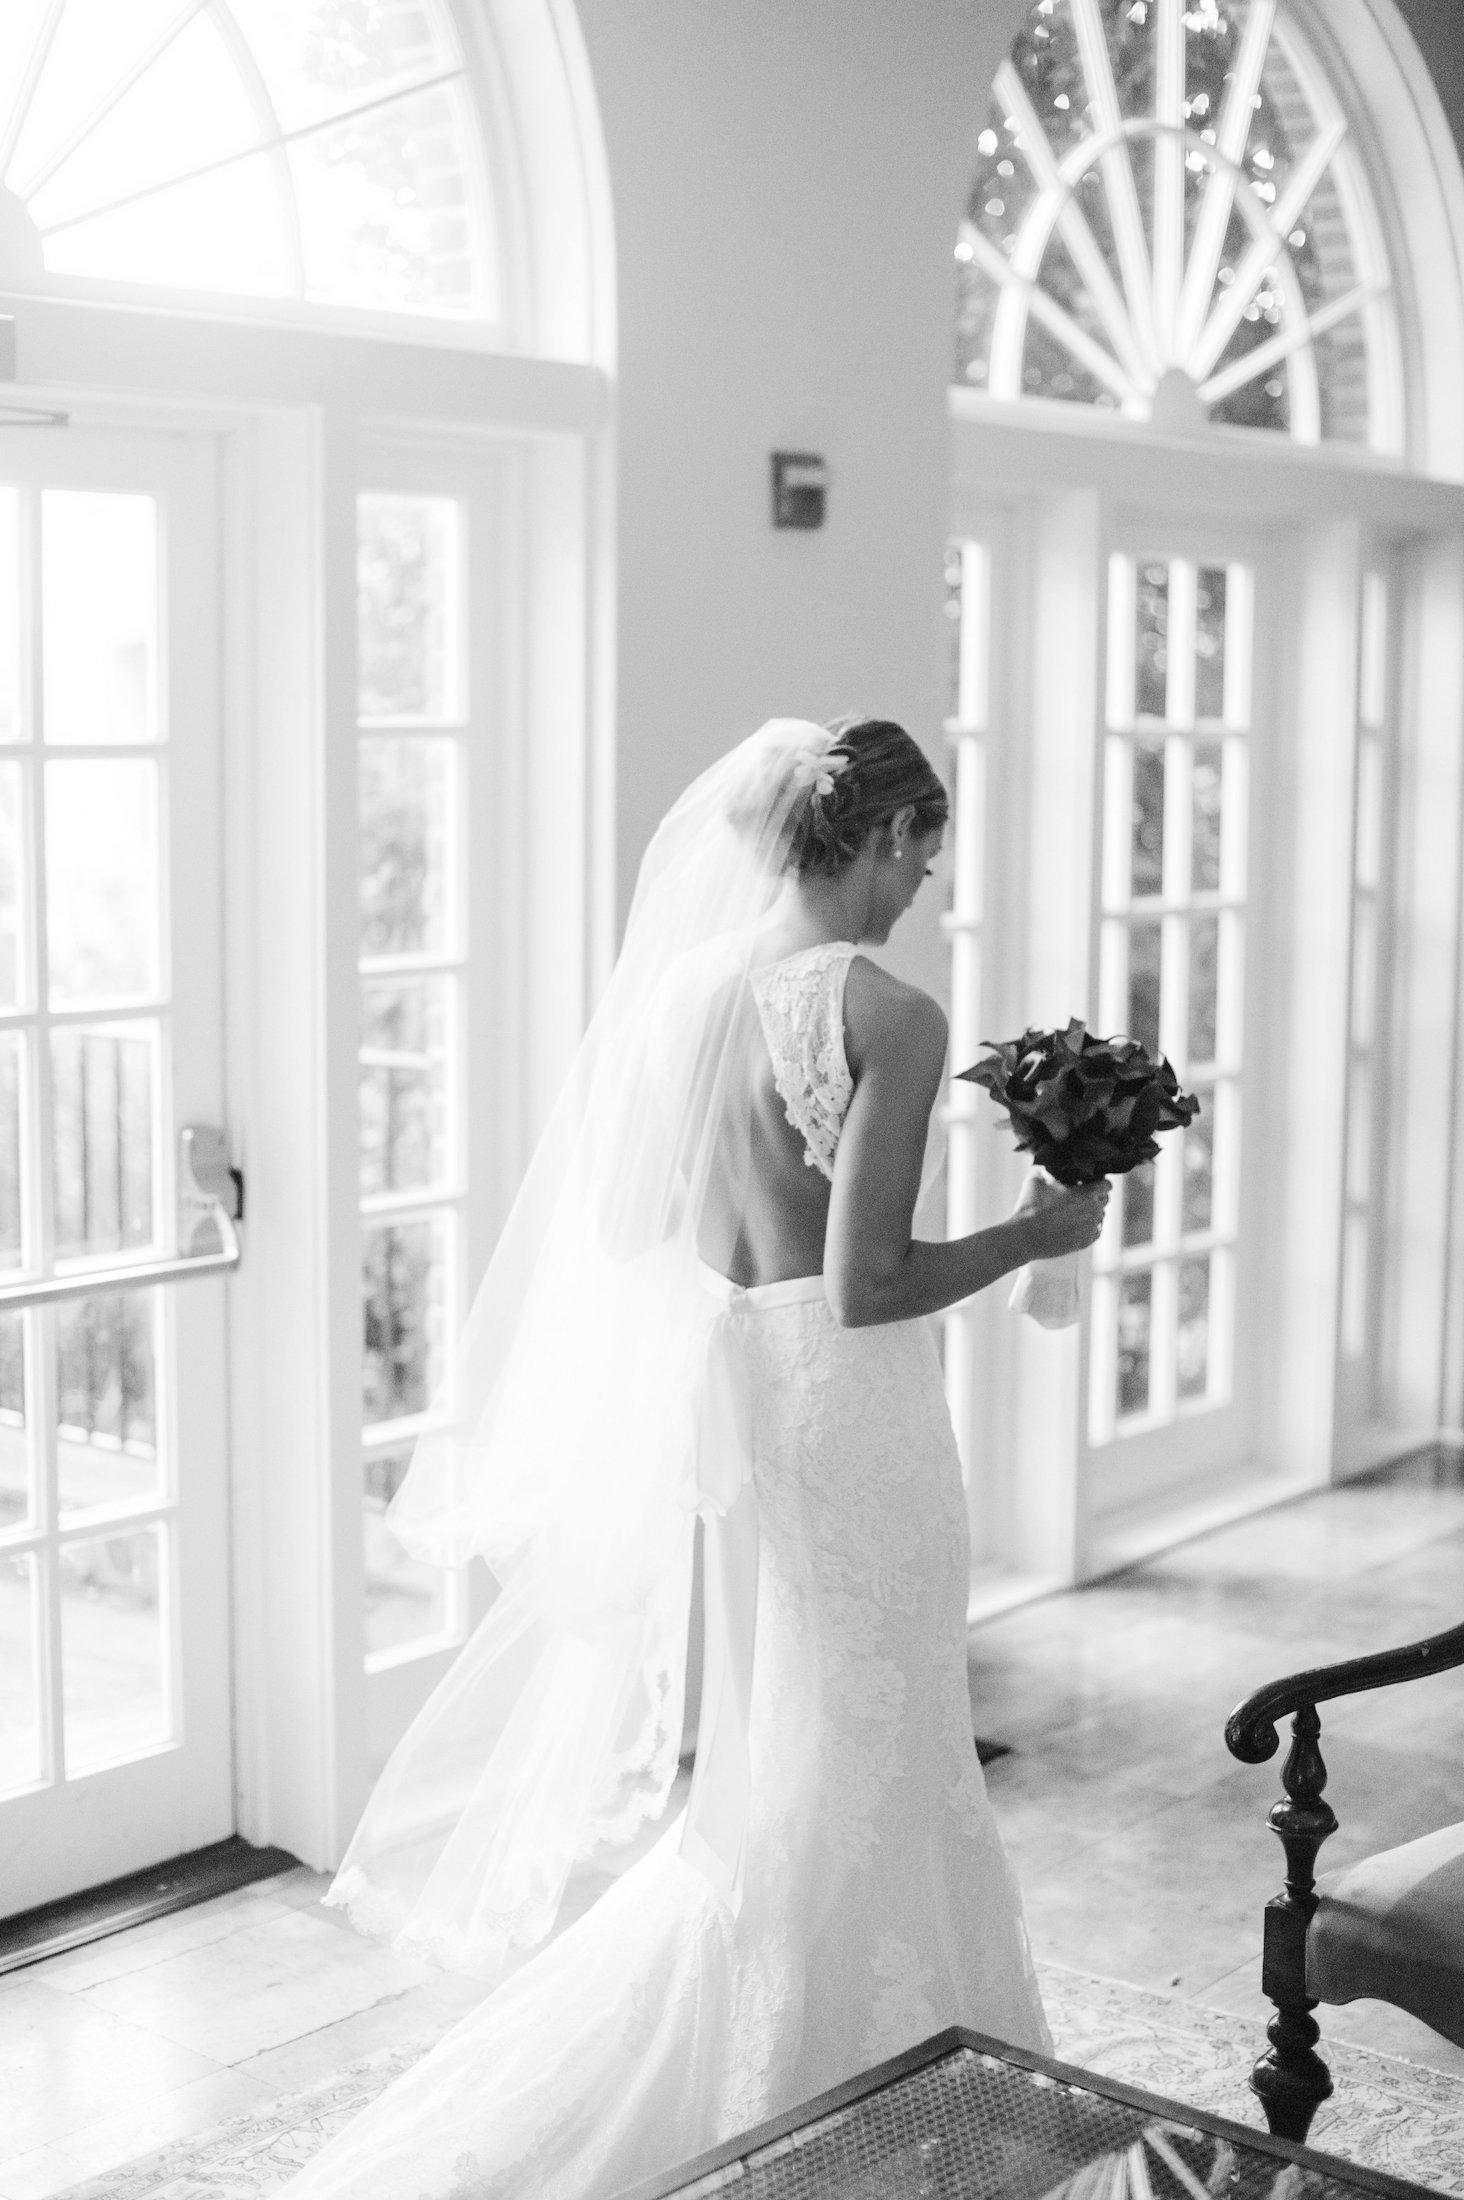 Wedding planners at Belmont Country Club, Virginia